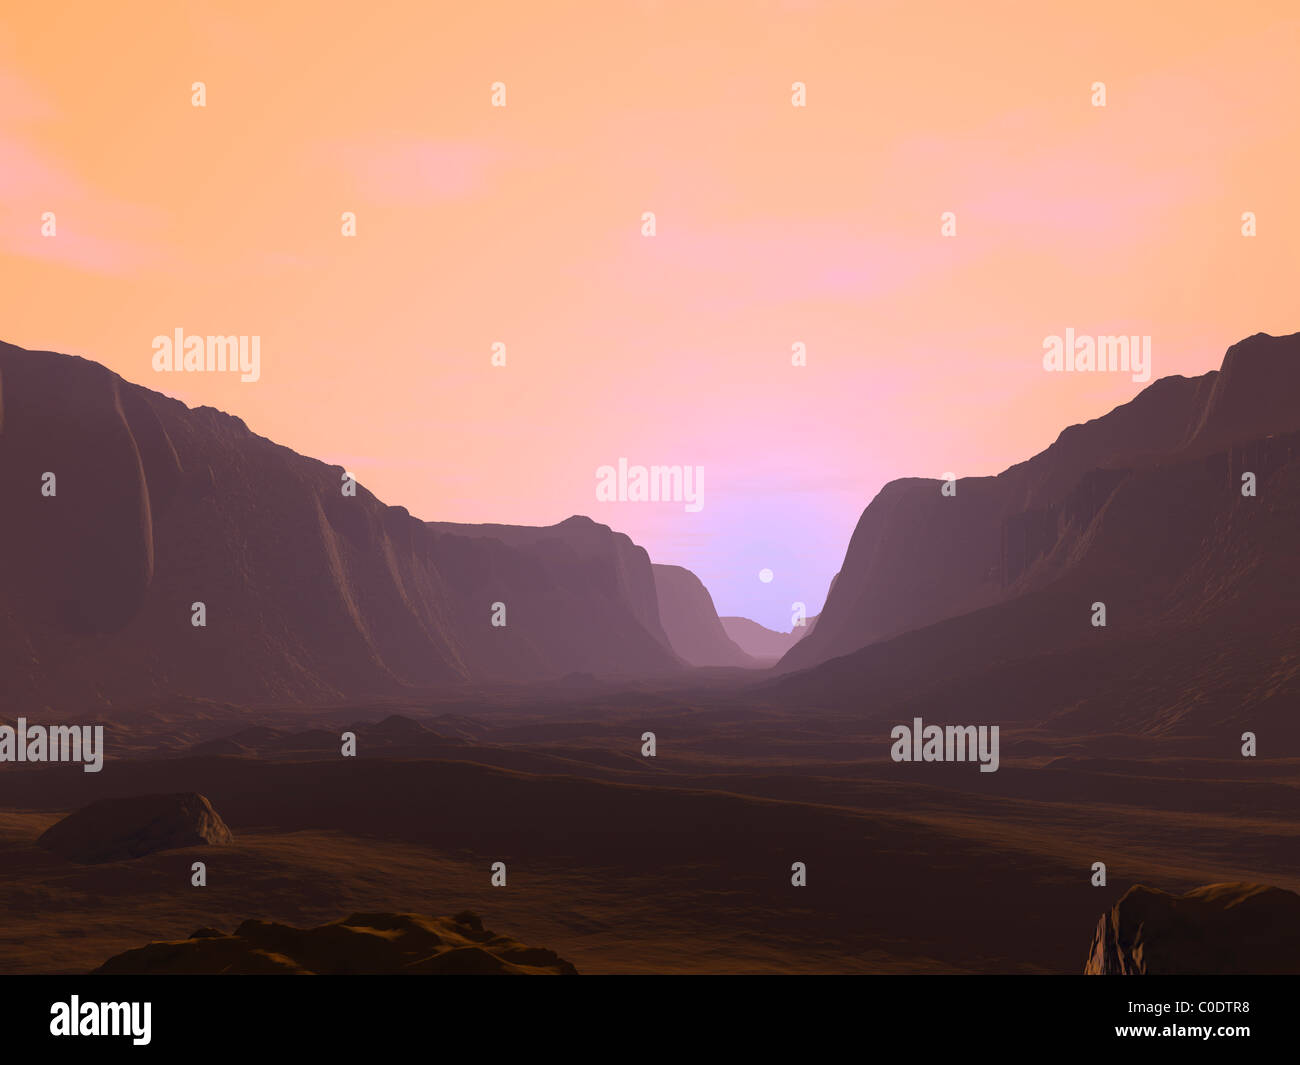 Illustration of a martian sunrise from within a deep canyon. - Stock Image